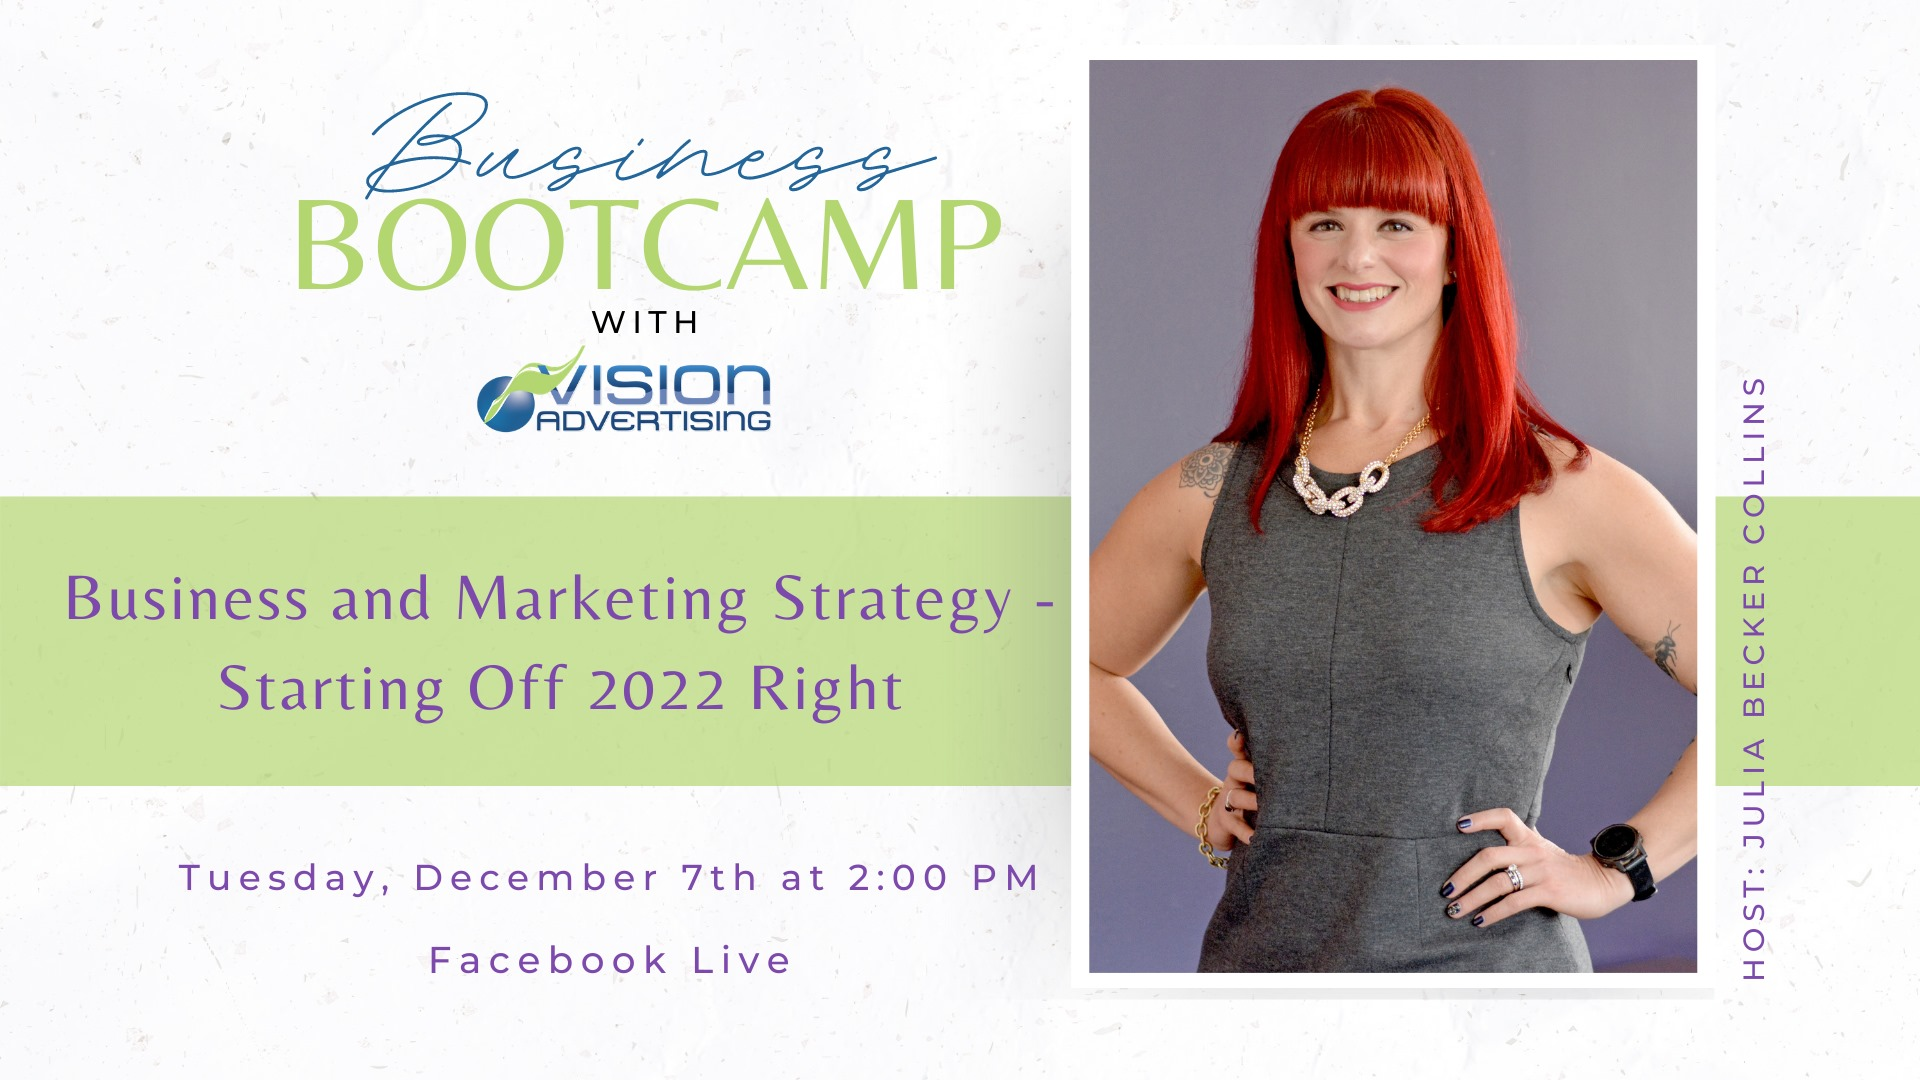 Business and Marketing Strategy - Starting Off 2022 Right with Julia Becker Collins